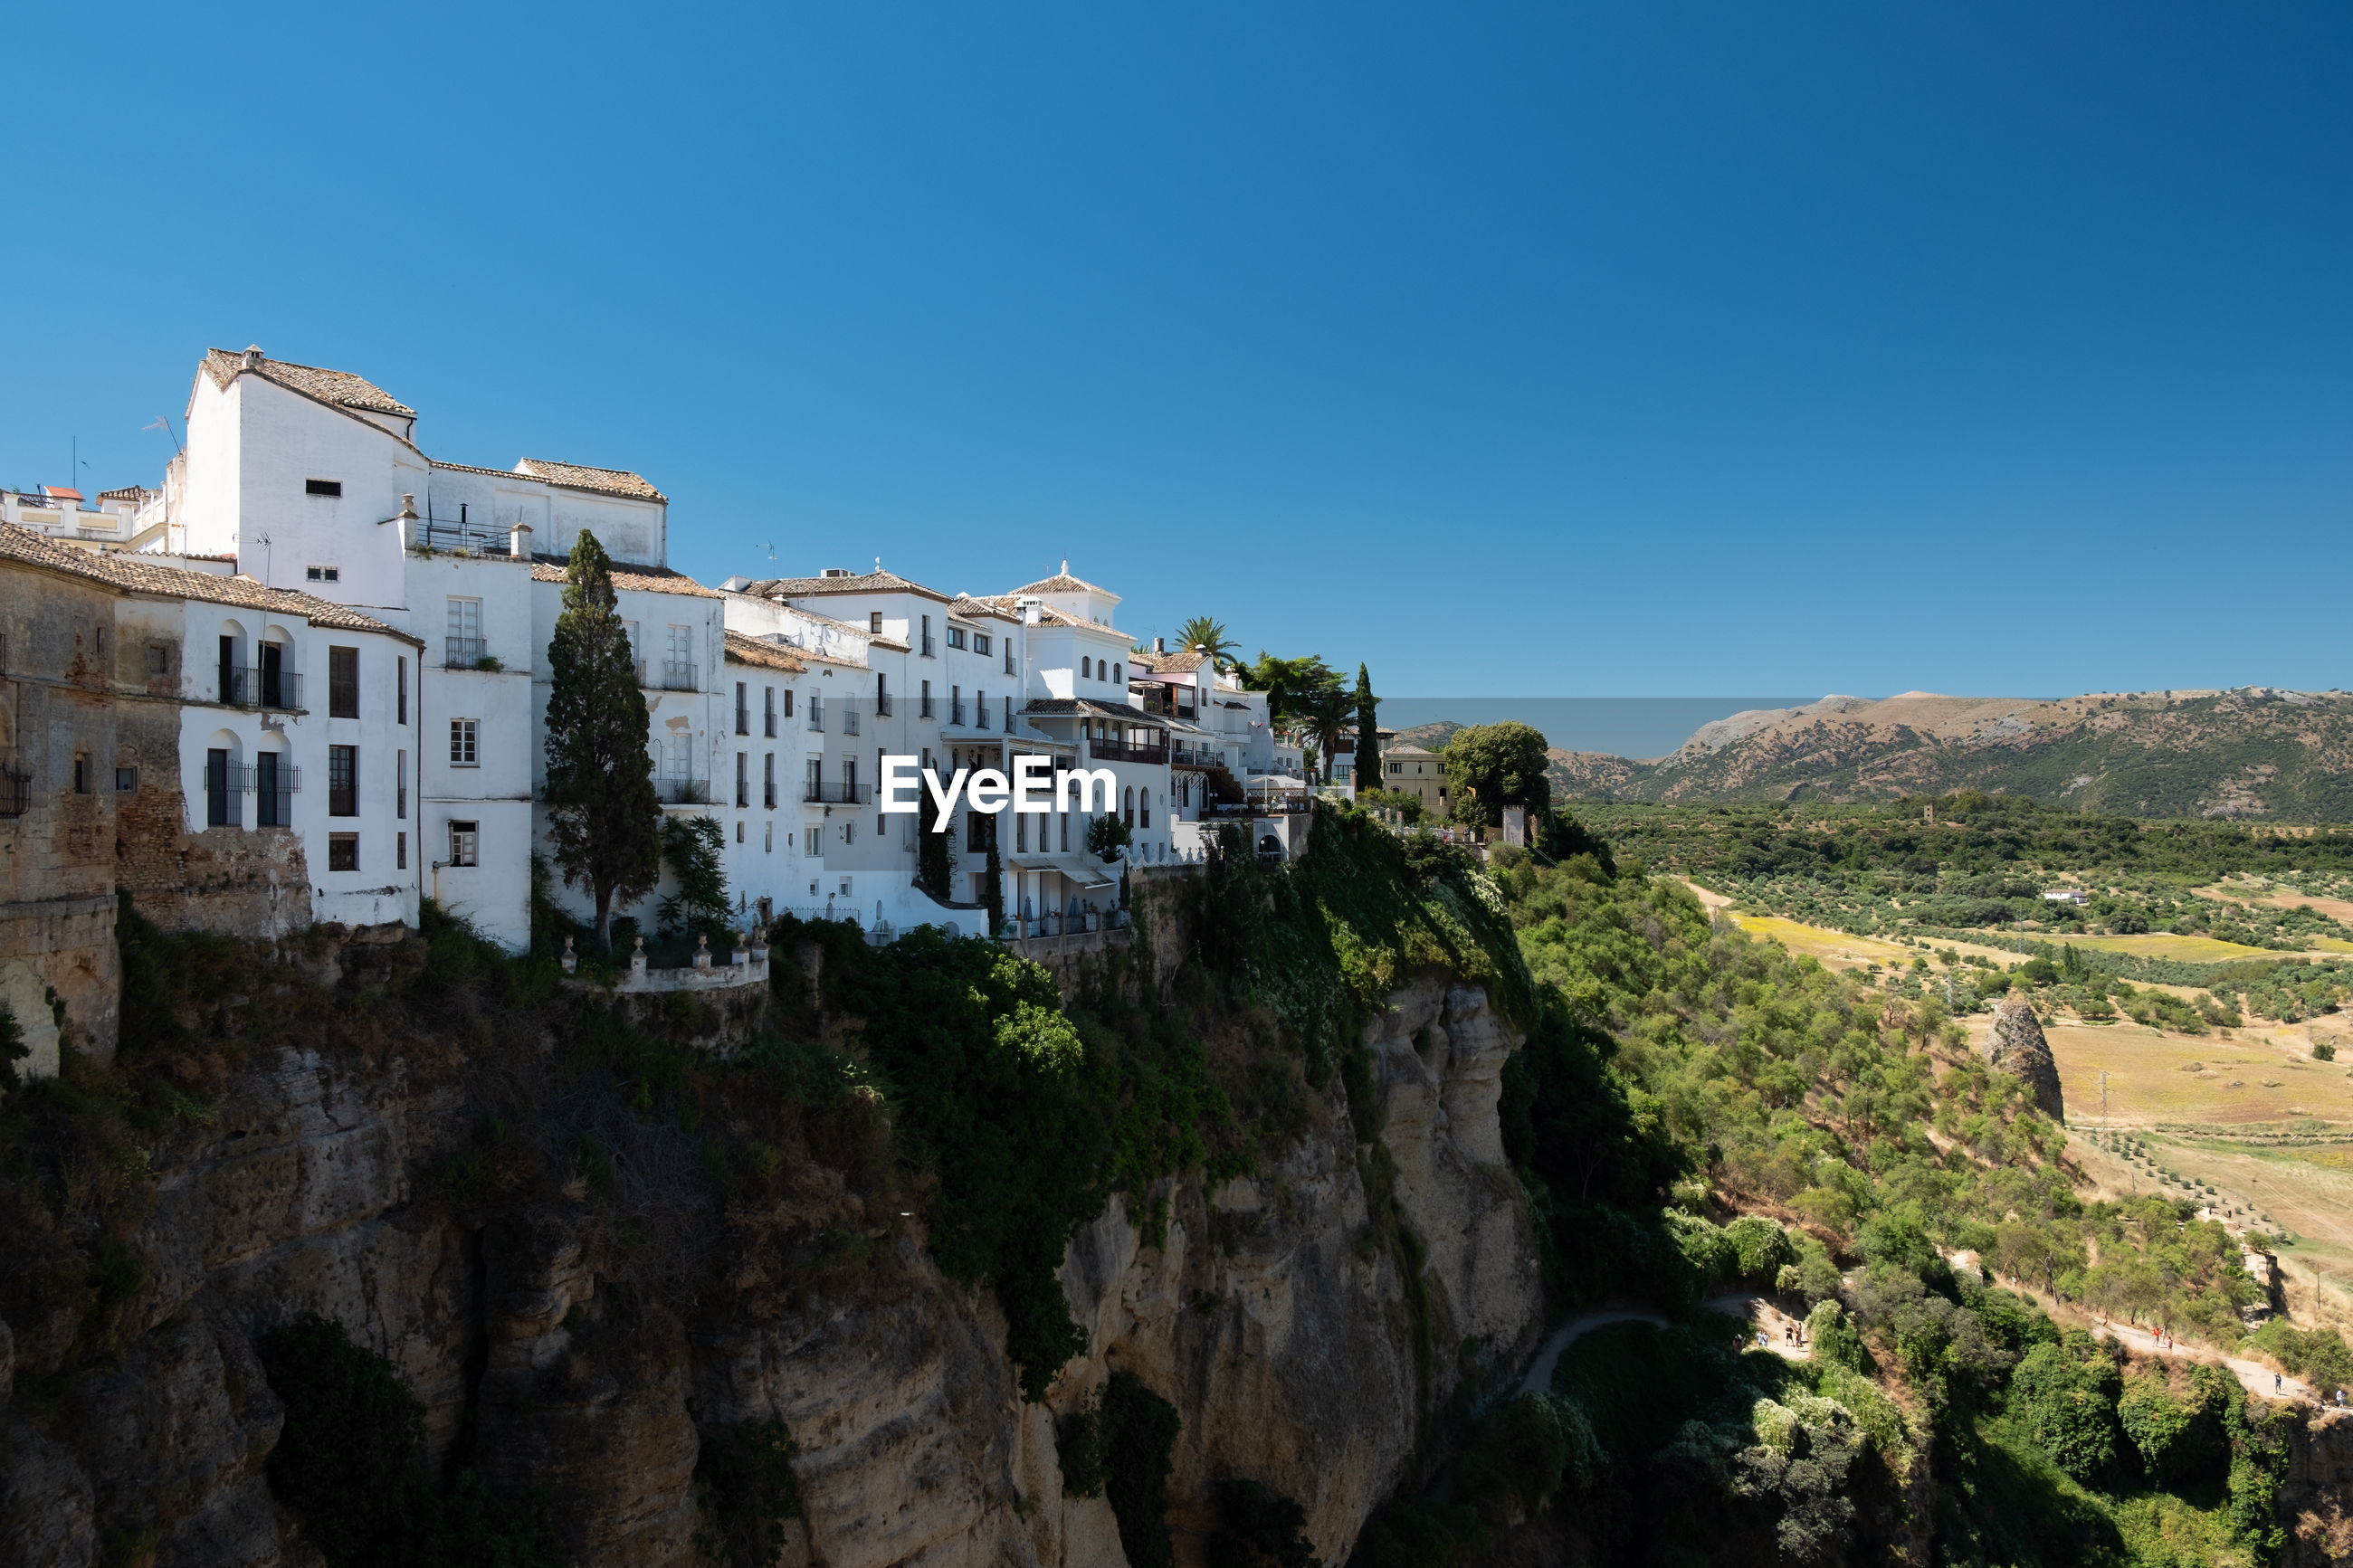 Panoramic view of buildings and mountains against clear blue sky